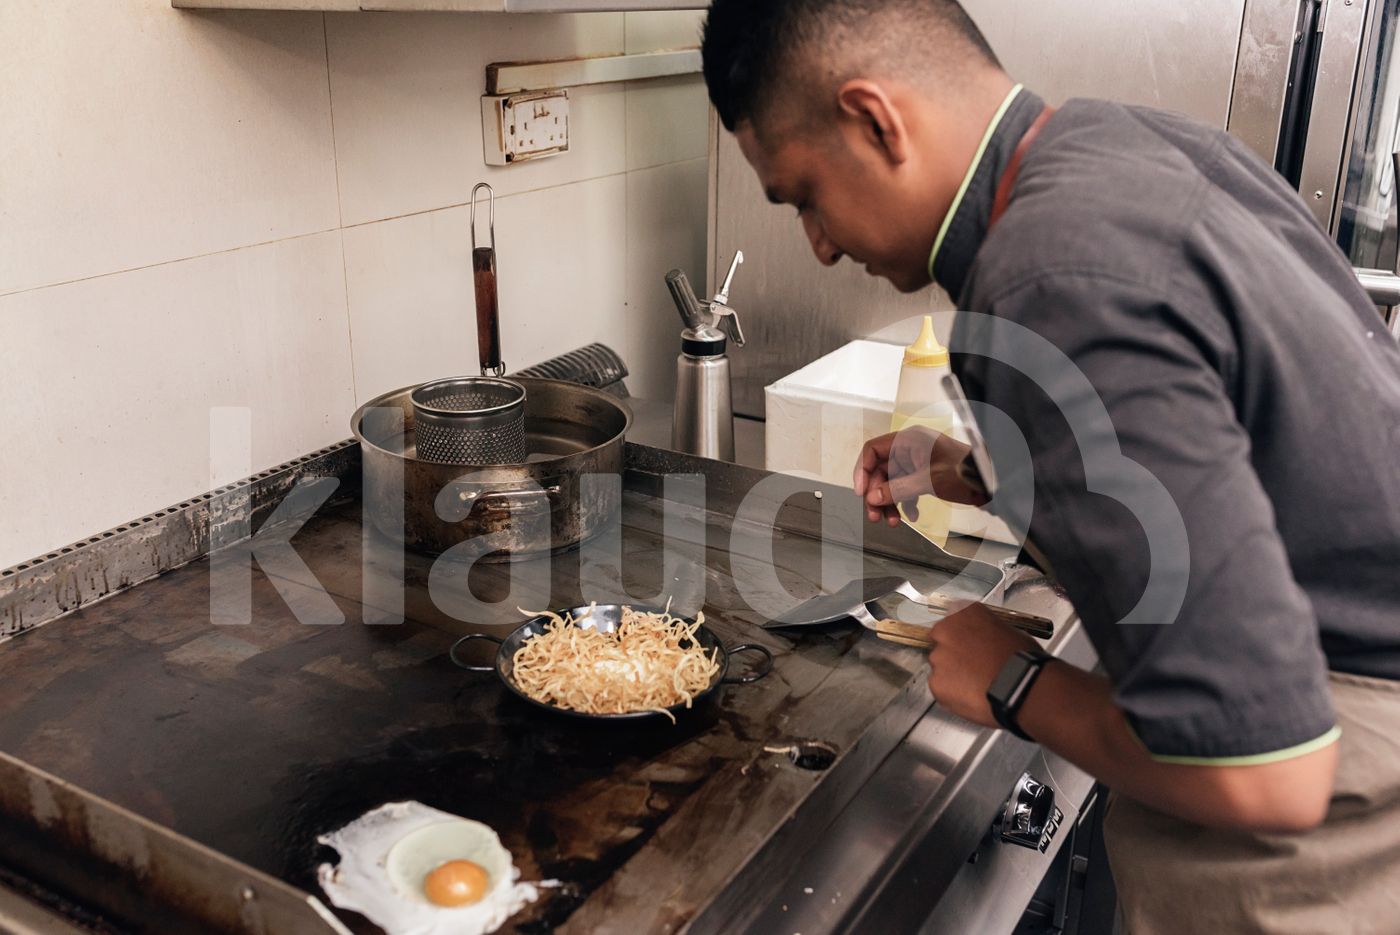 Asian chef preparing food in the restaurant kitchen